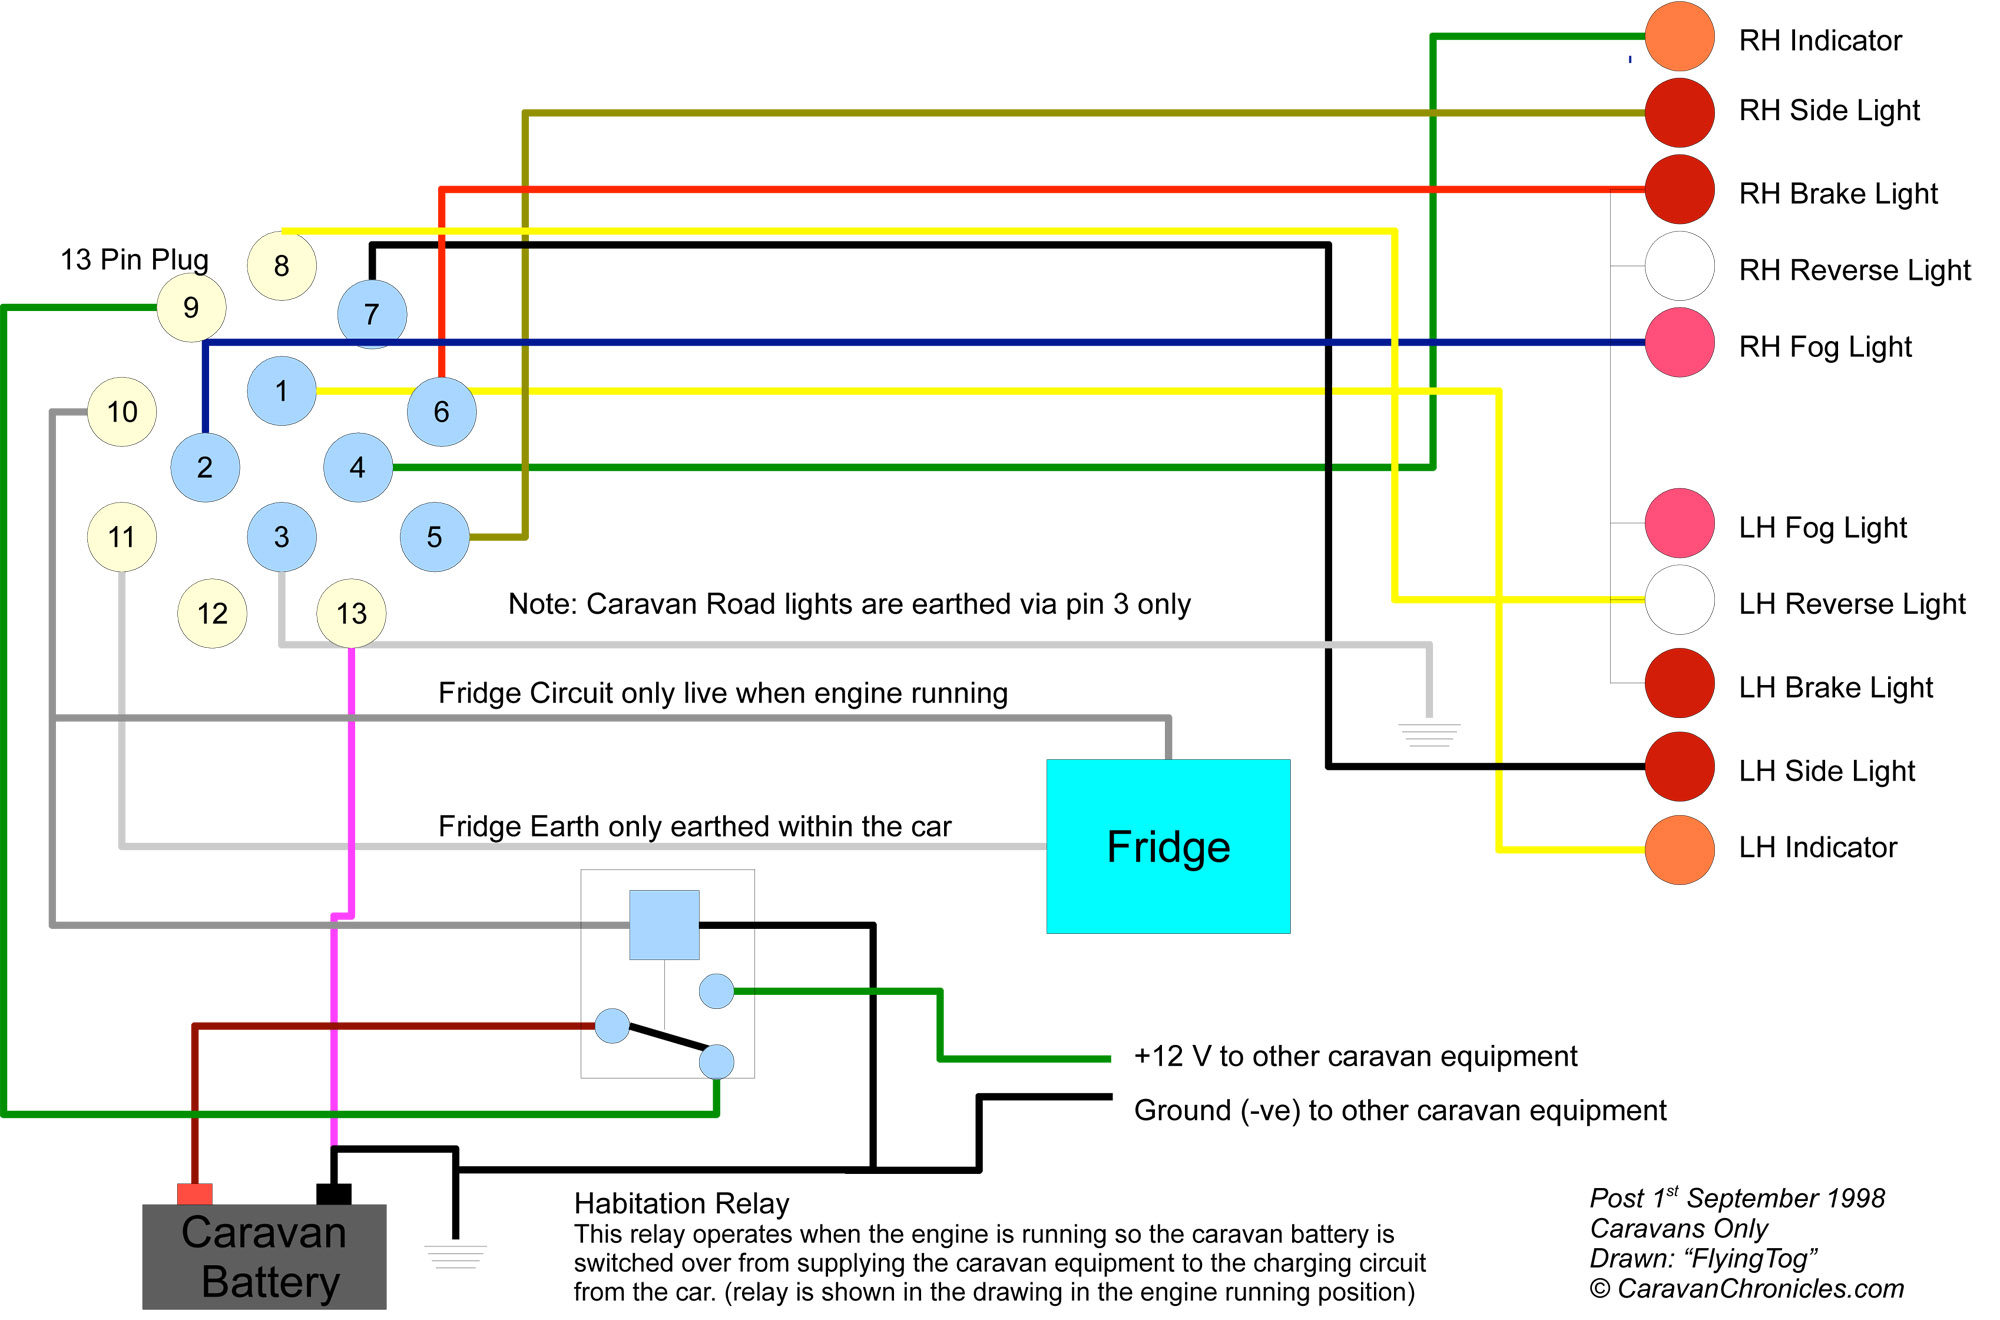 basic caravan wiring diagram basic wiring diagrams online understanding caravan and tow car electrics caravan chronicles